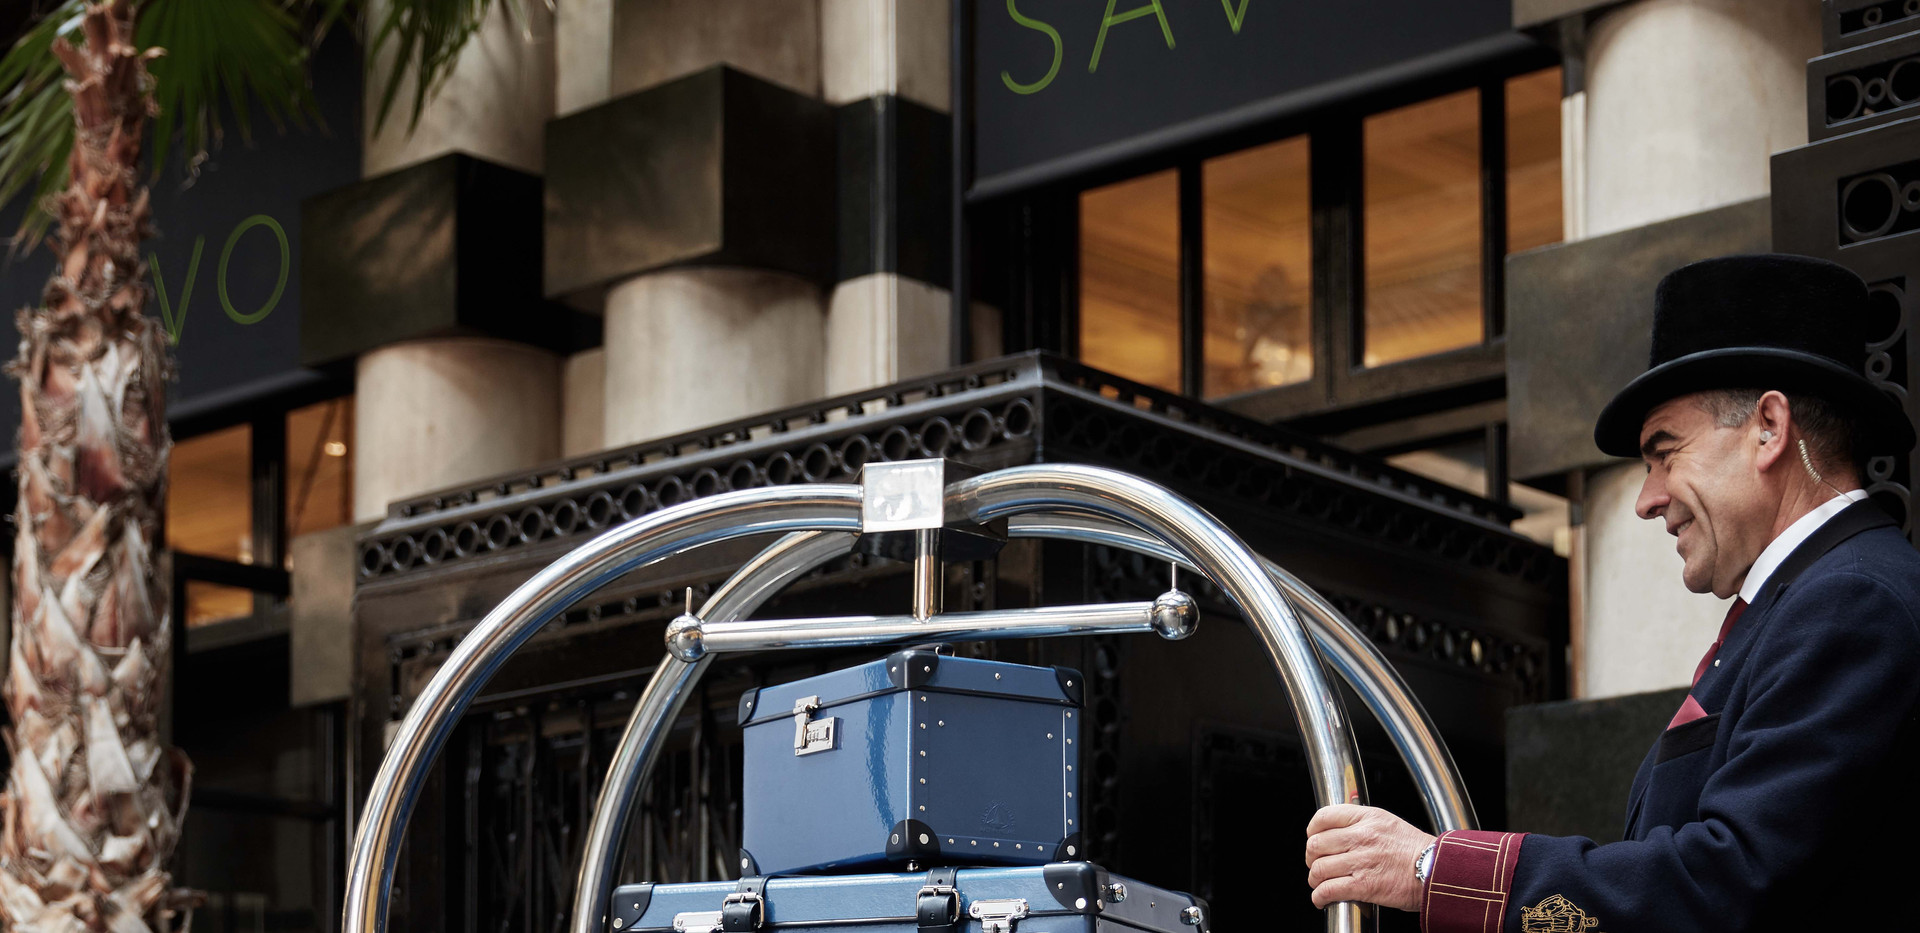 Globe -Trotter Sapphire Blue Deluxe collection at Savoy hottel